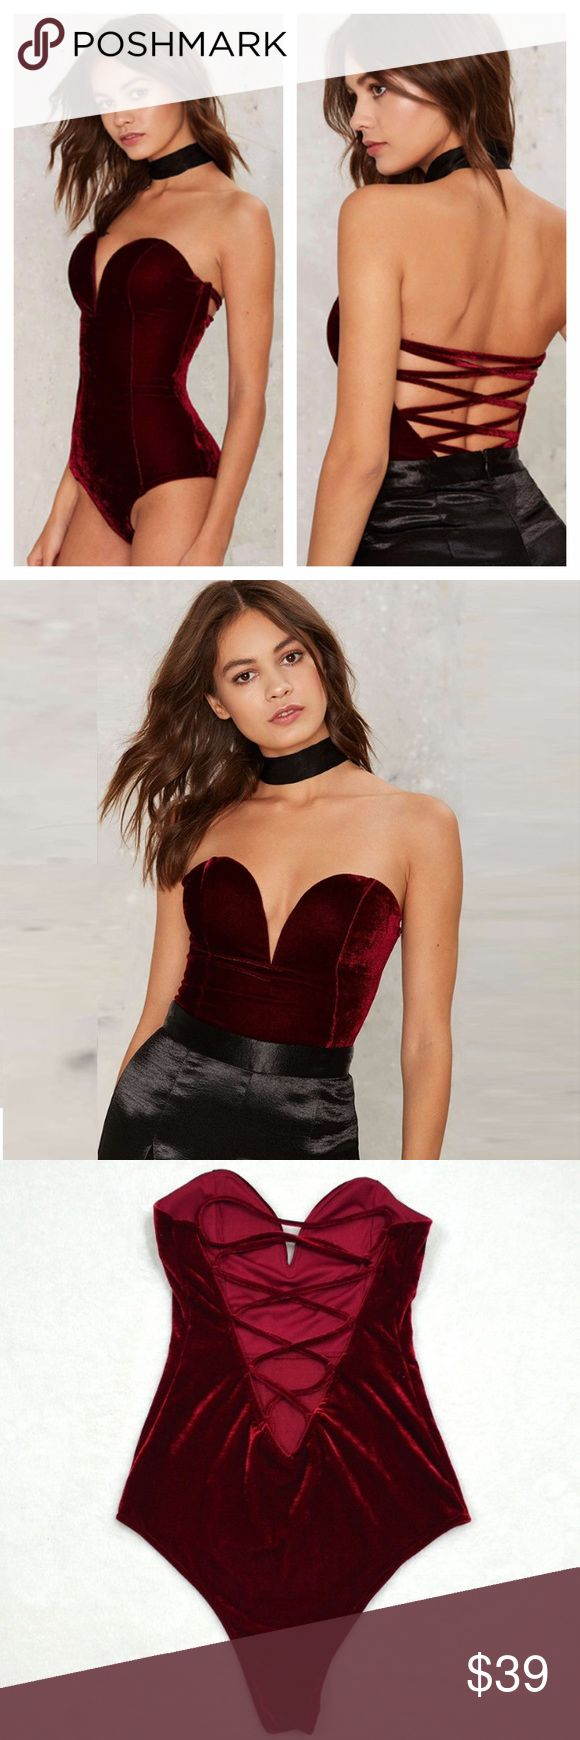 LAST ONE Velvet Lace Up Back Strapless Bodysuit Brand new gorgeous bodysuit. Laces up back and snaps at crotch. Ship same day if ordered by 10:00 CST. Bundle 3 items and save 15% Tops